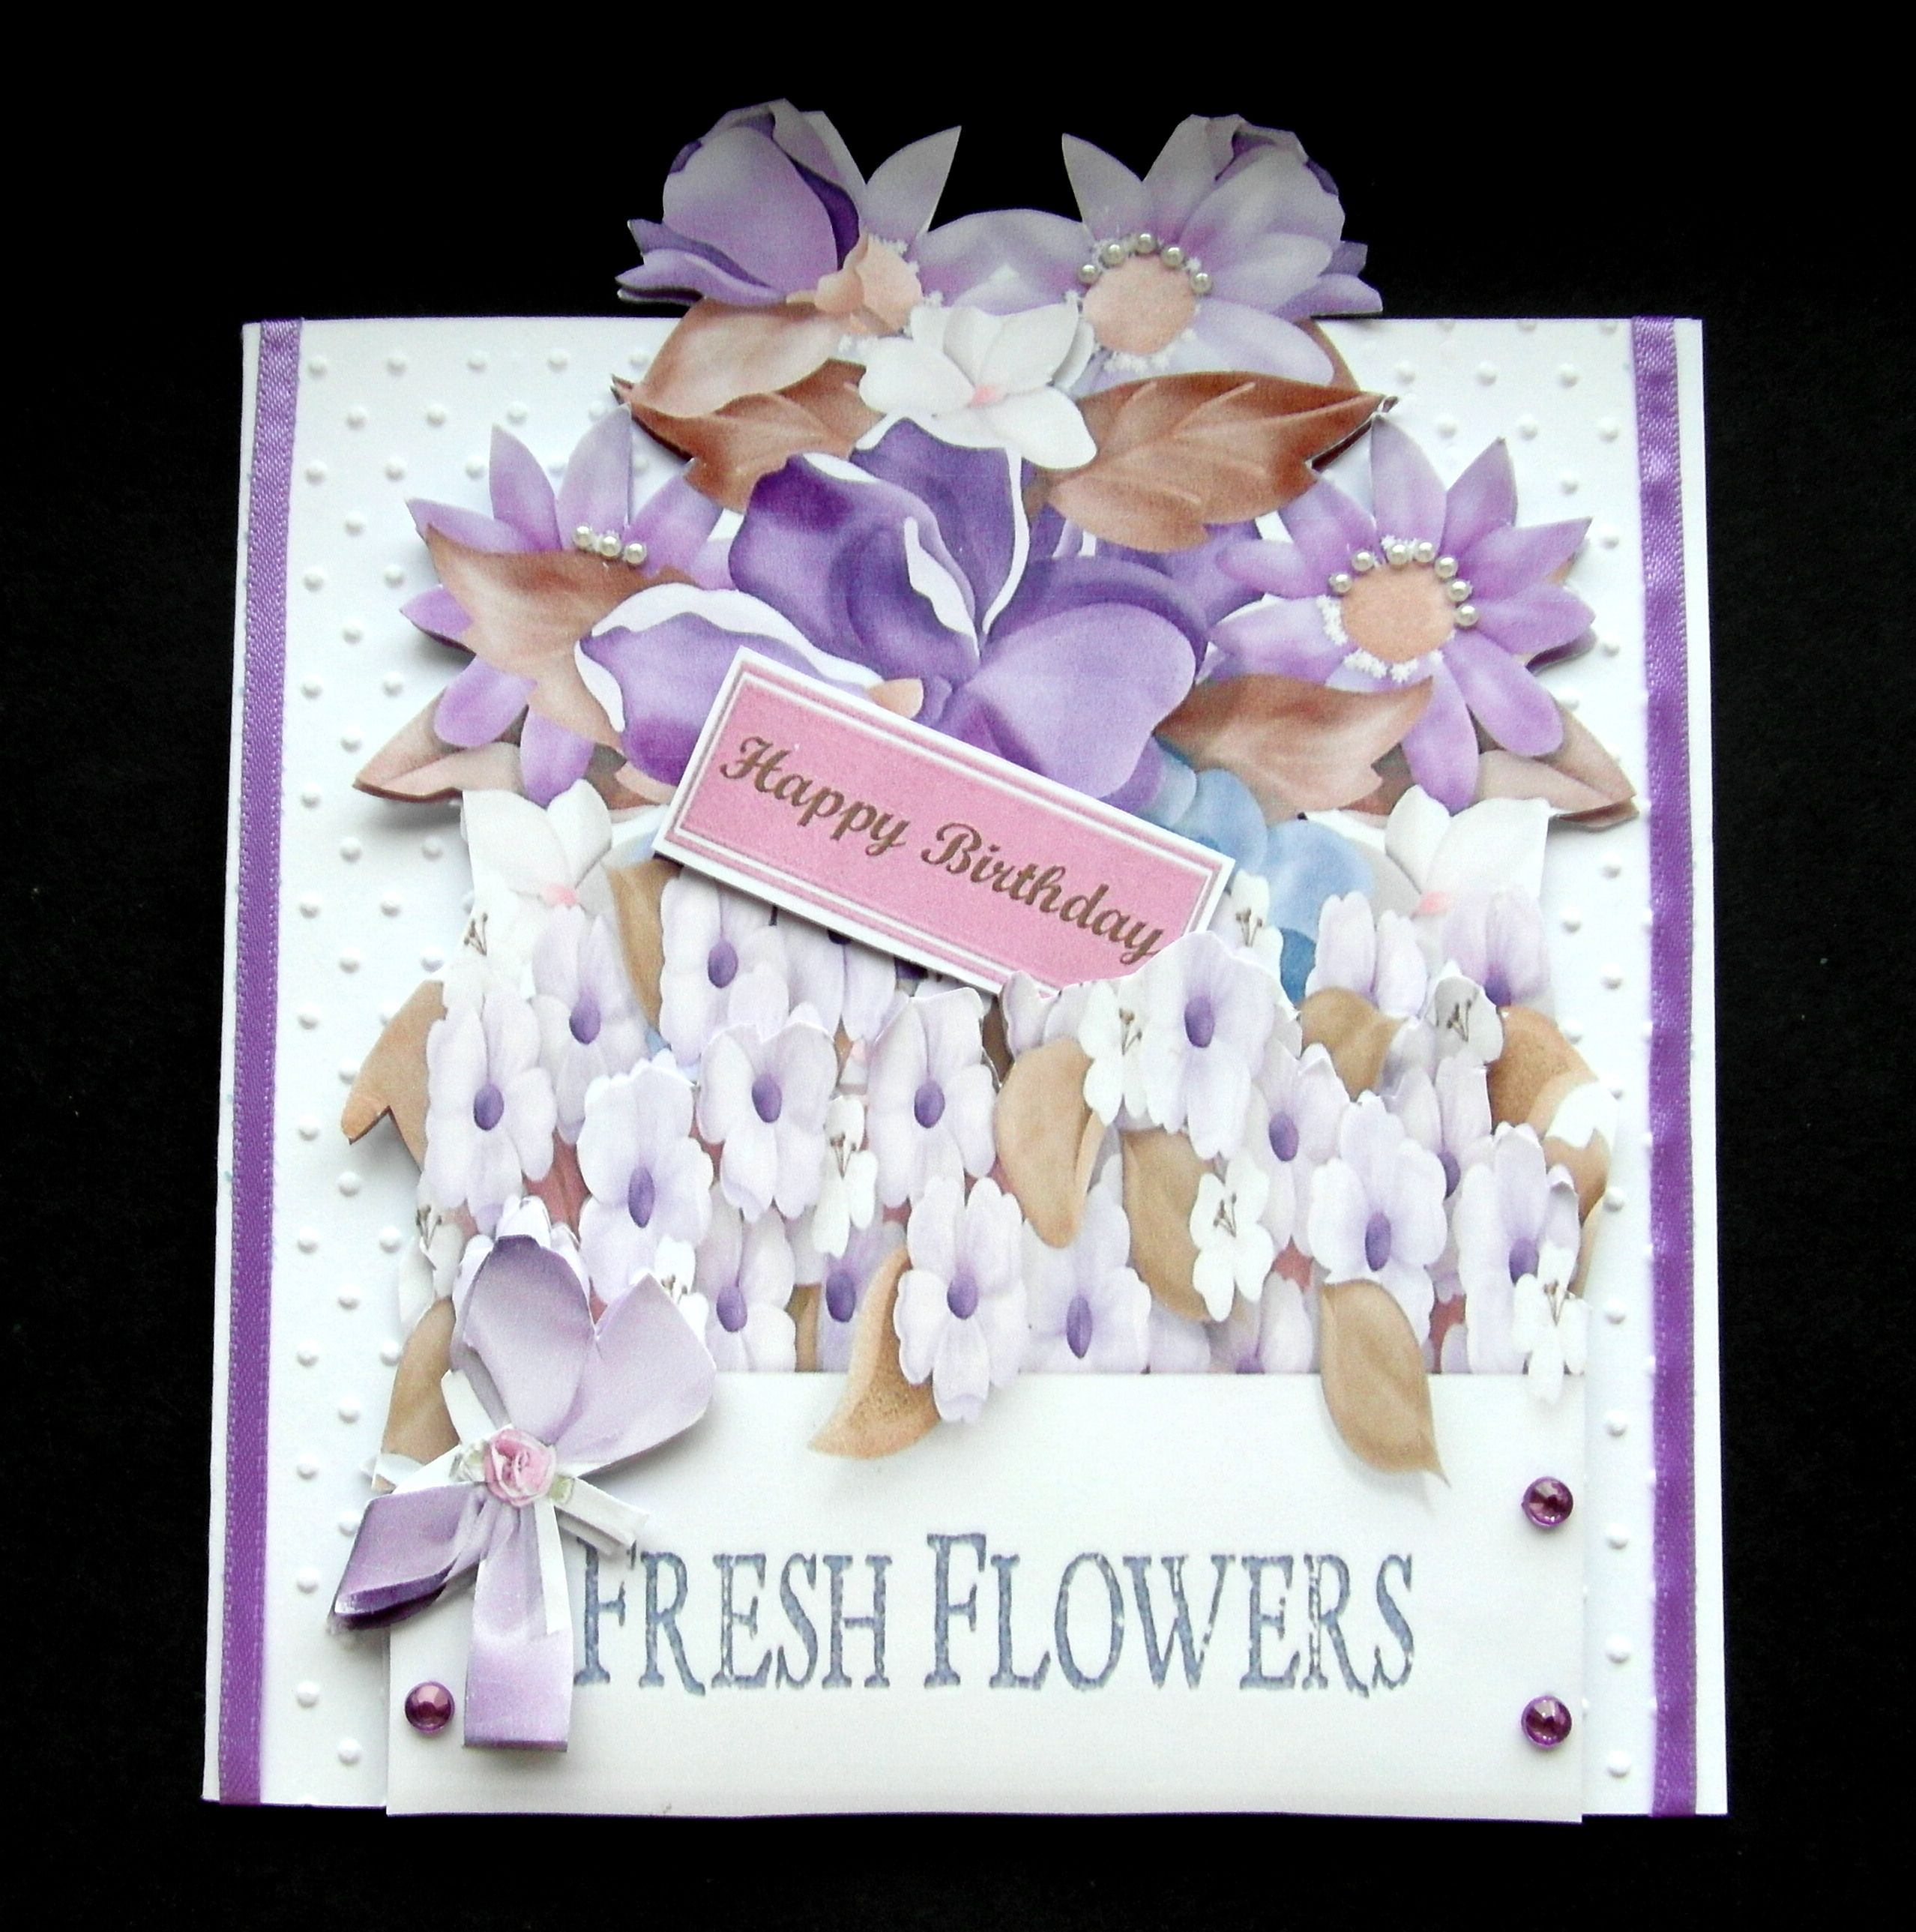 Hand made birthday card cup5526131398 flowers over the edge cup hand made birthday card cup5526131398 flowers over the edge izmirmasajfo Images